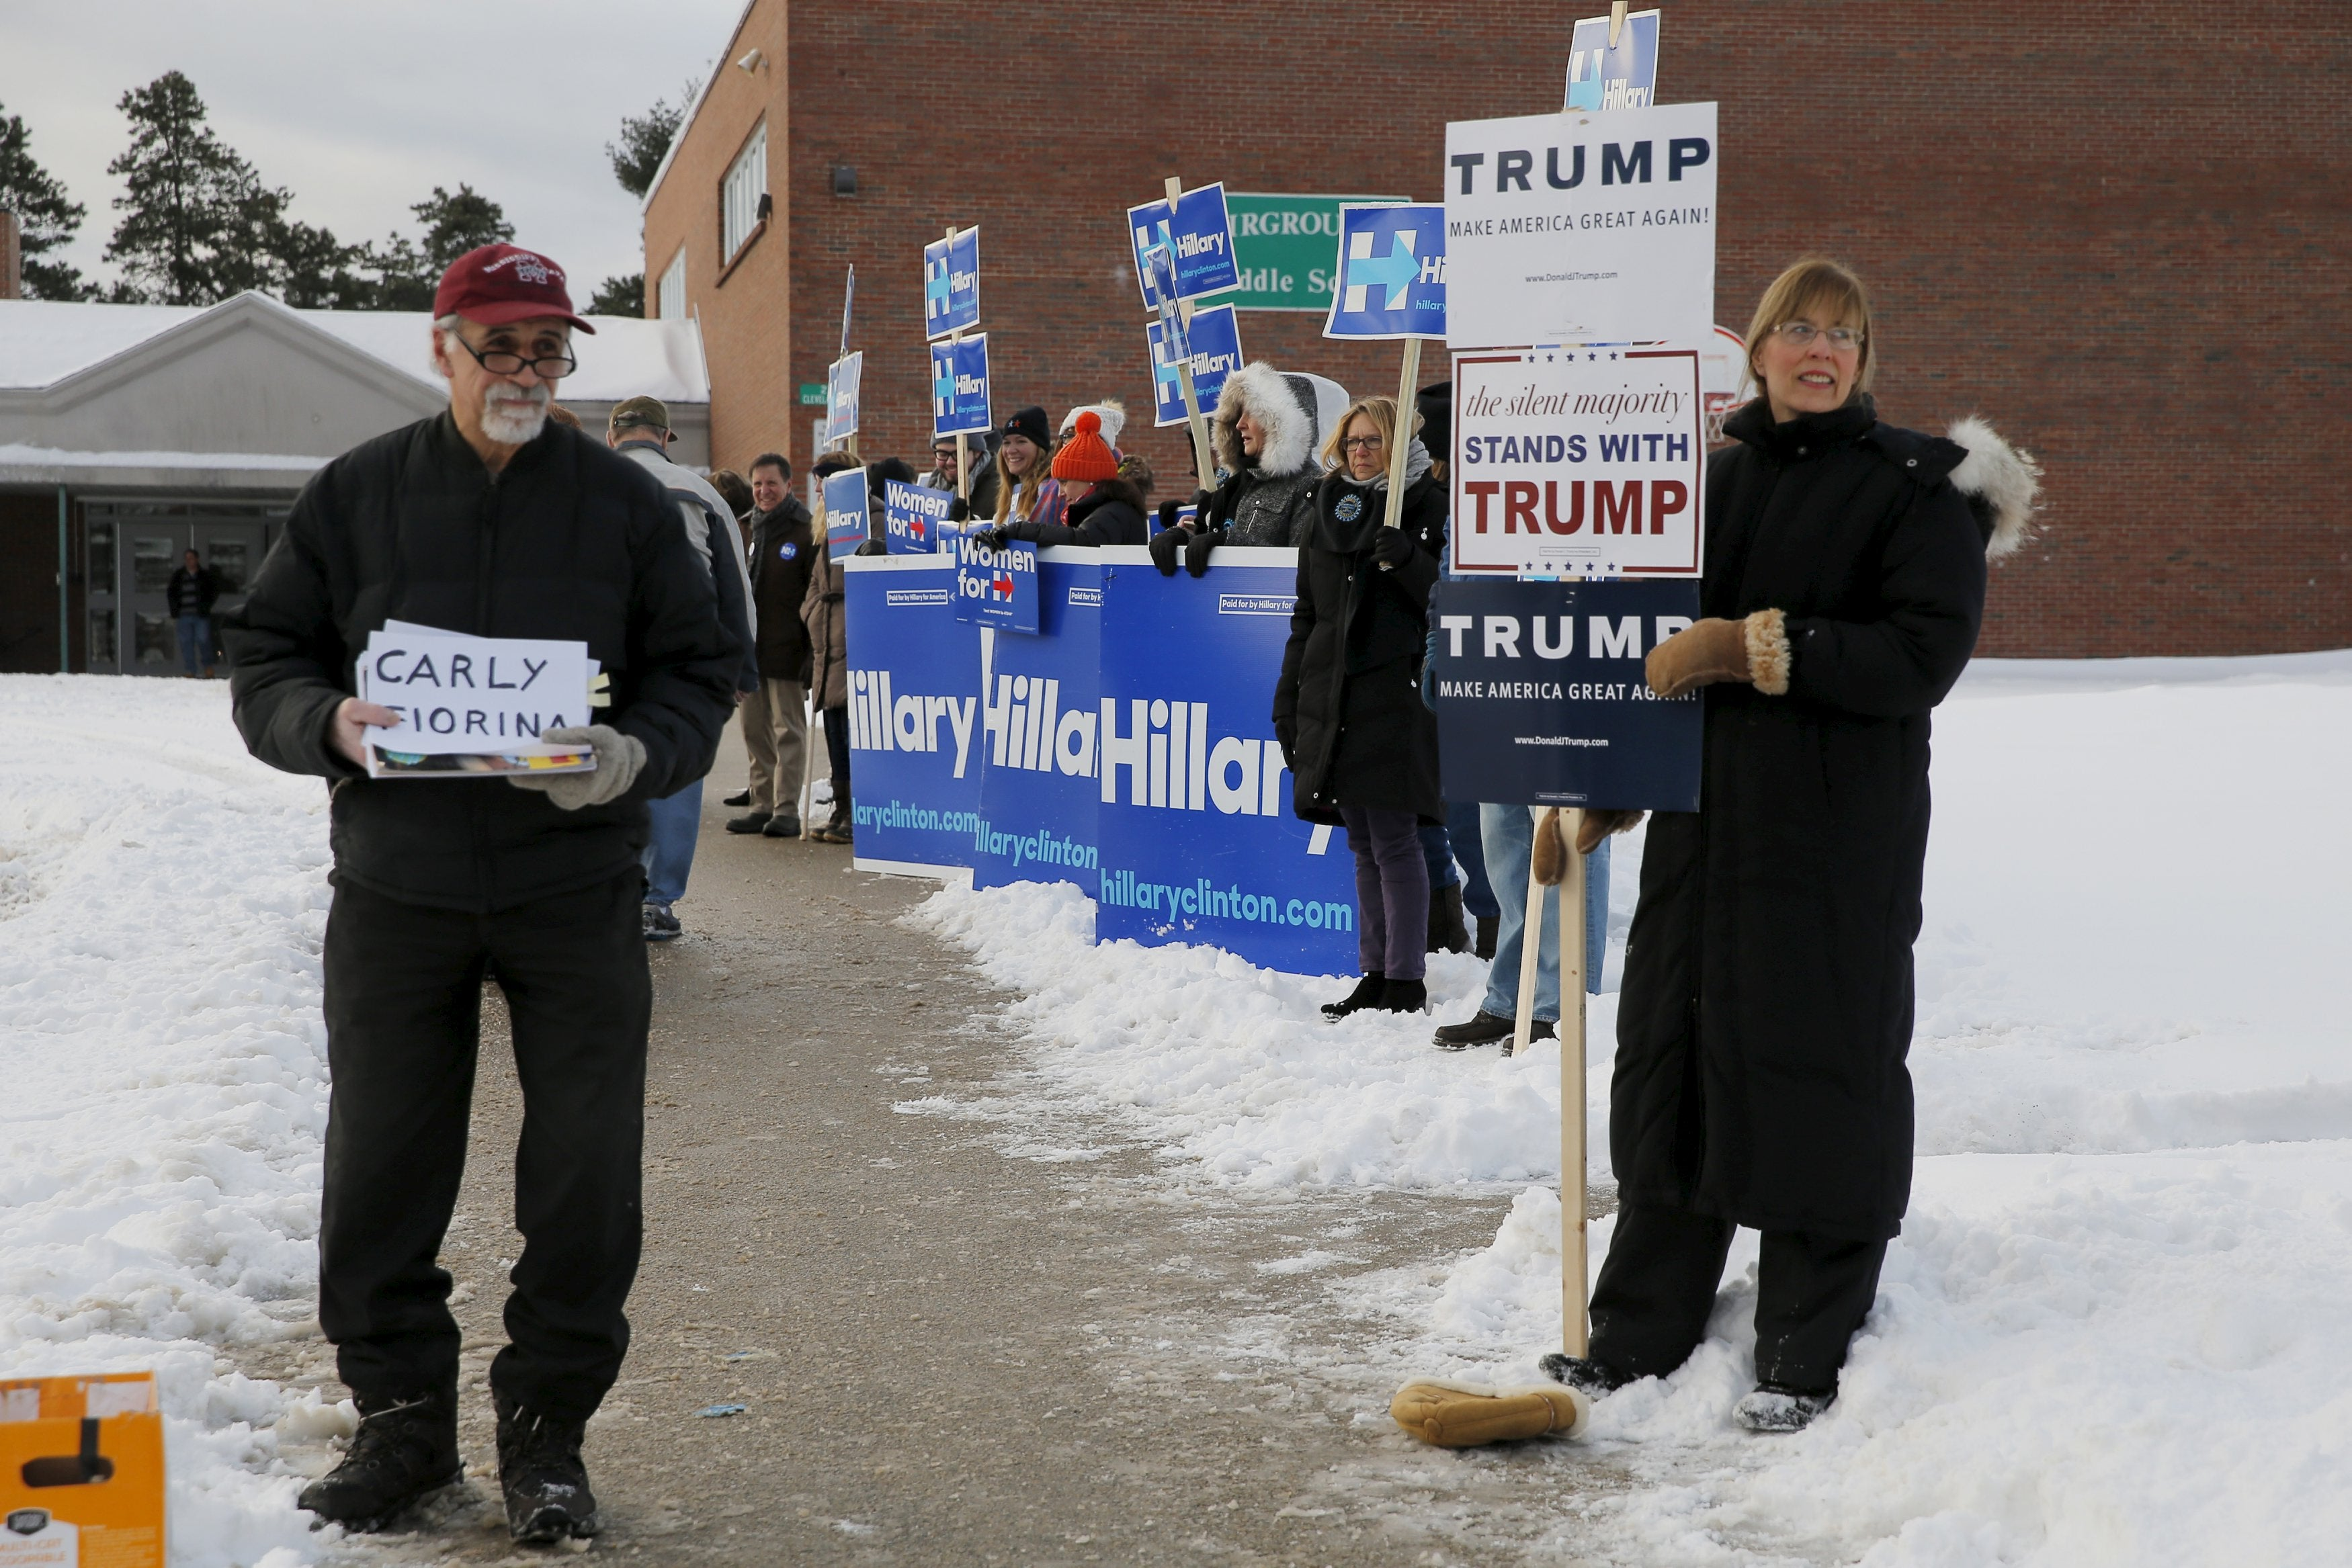 Supporters of presidential candidates Carly Fiorina and Donald Trump stand outside a polling place alongside supporters of Hillary Clinton in Nashua, New Hampshire.